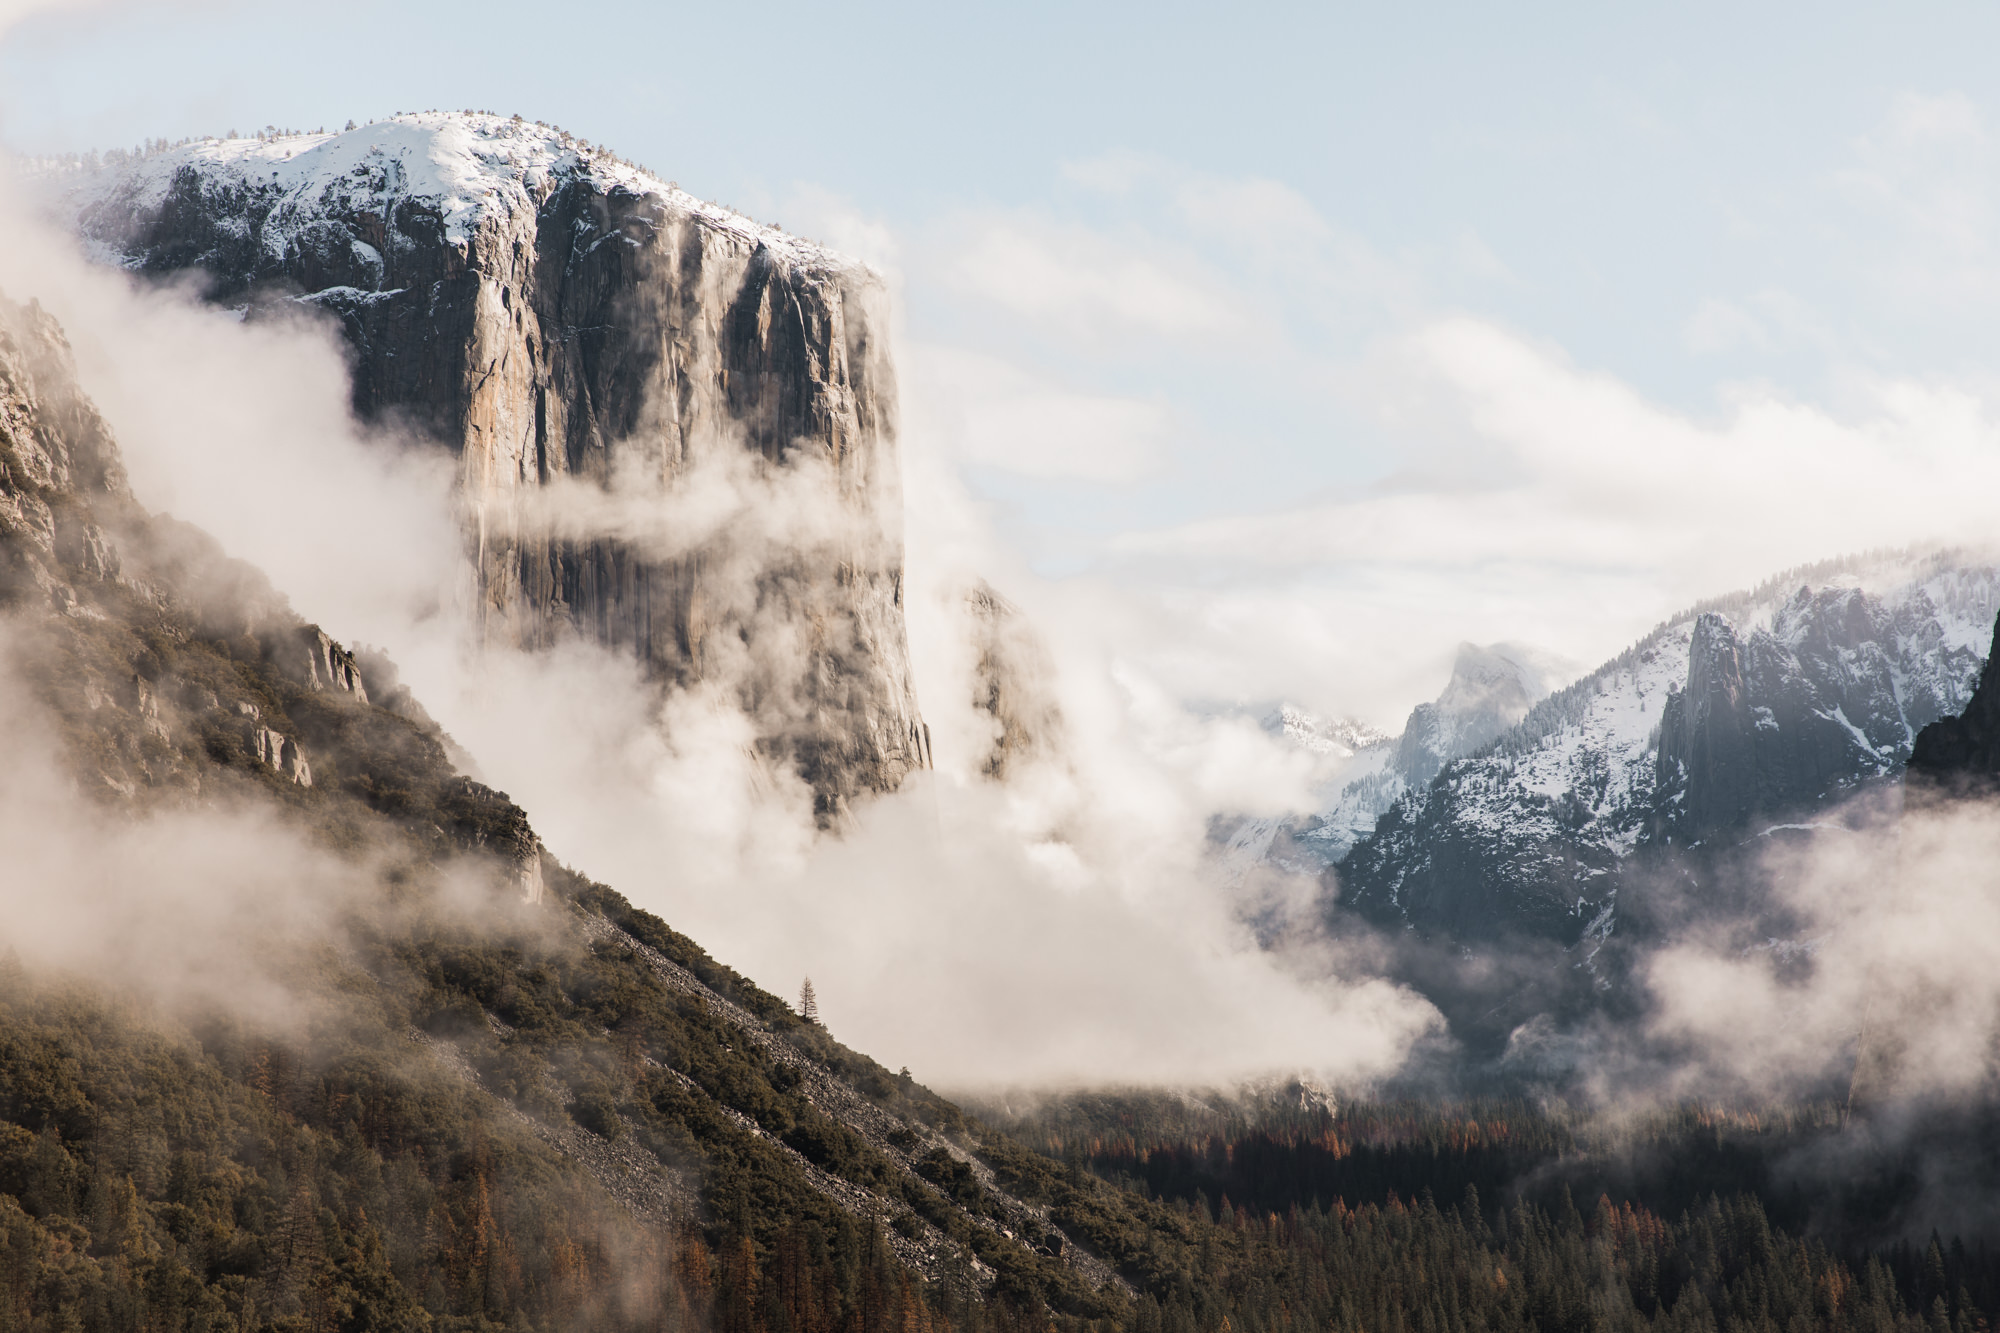 yosemite-adventure-photographer-9.jpg